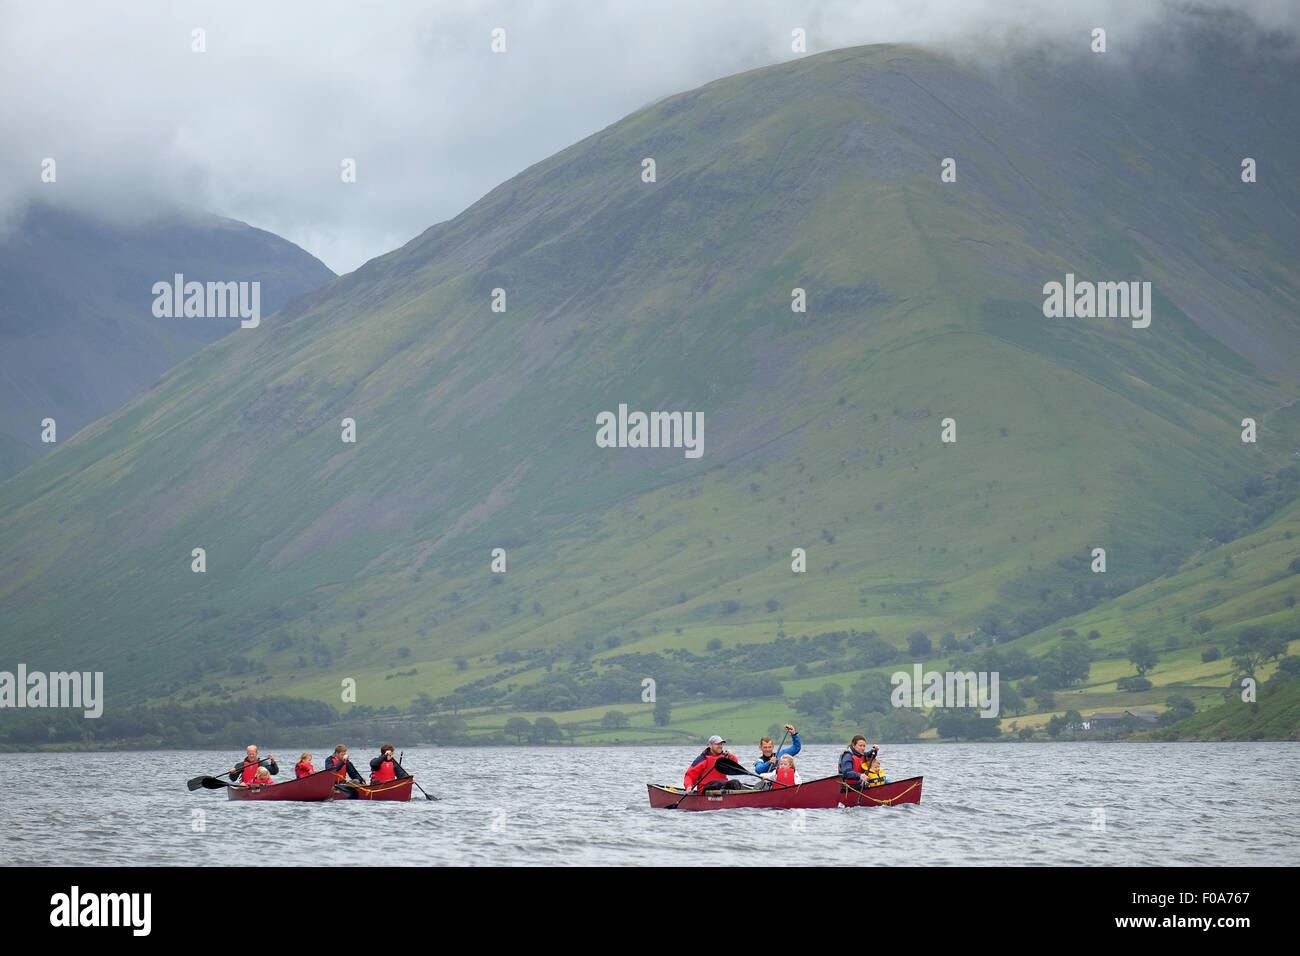 A group of people in canoe boats on Wastwater in the Lake District, Cumbria, UK - Stock Image